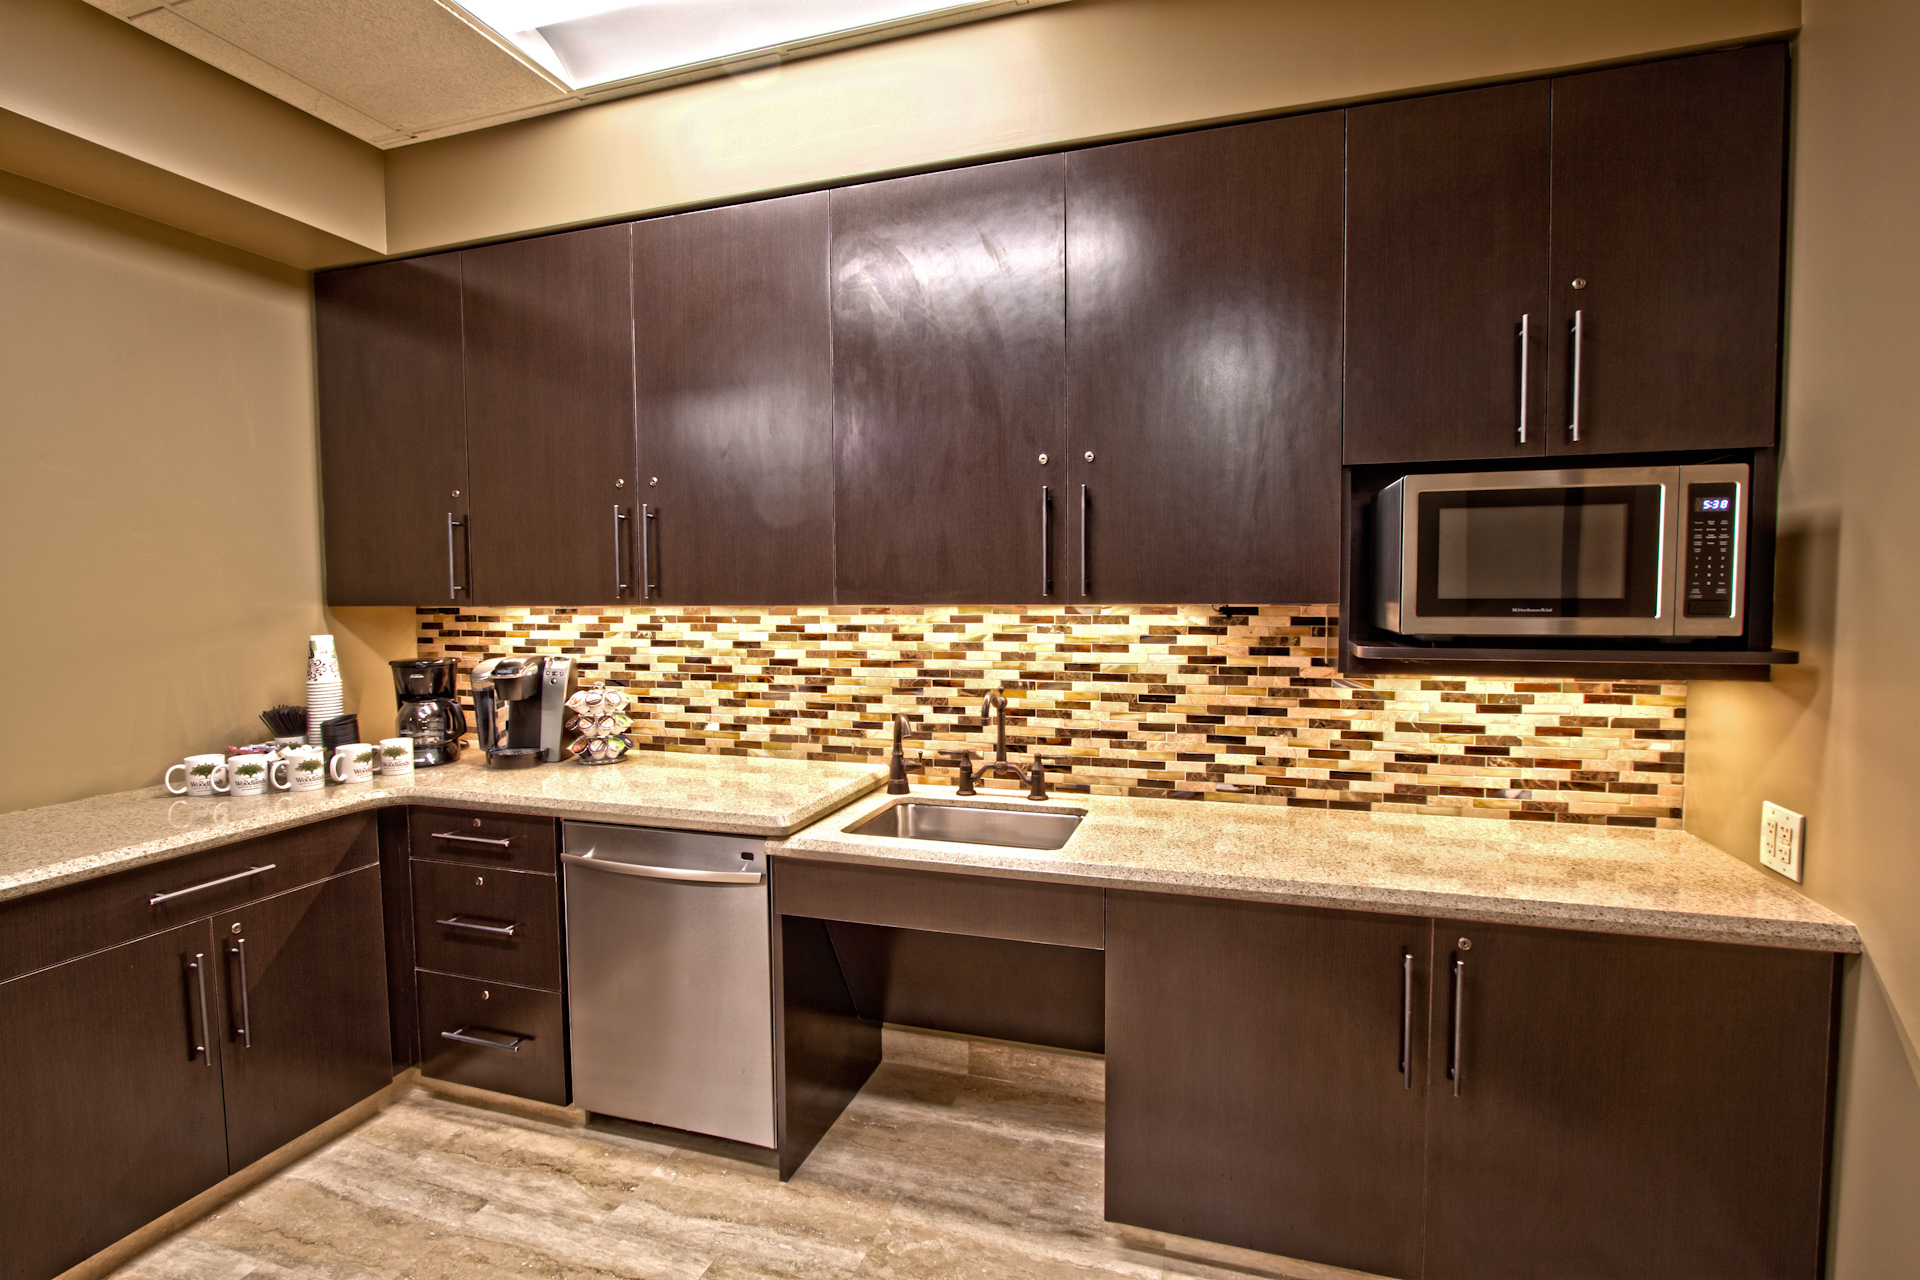 Our Break Room is designed for you and your guests!